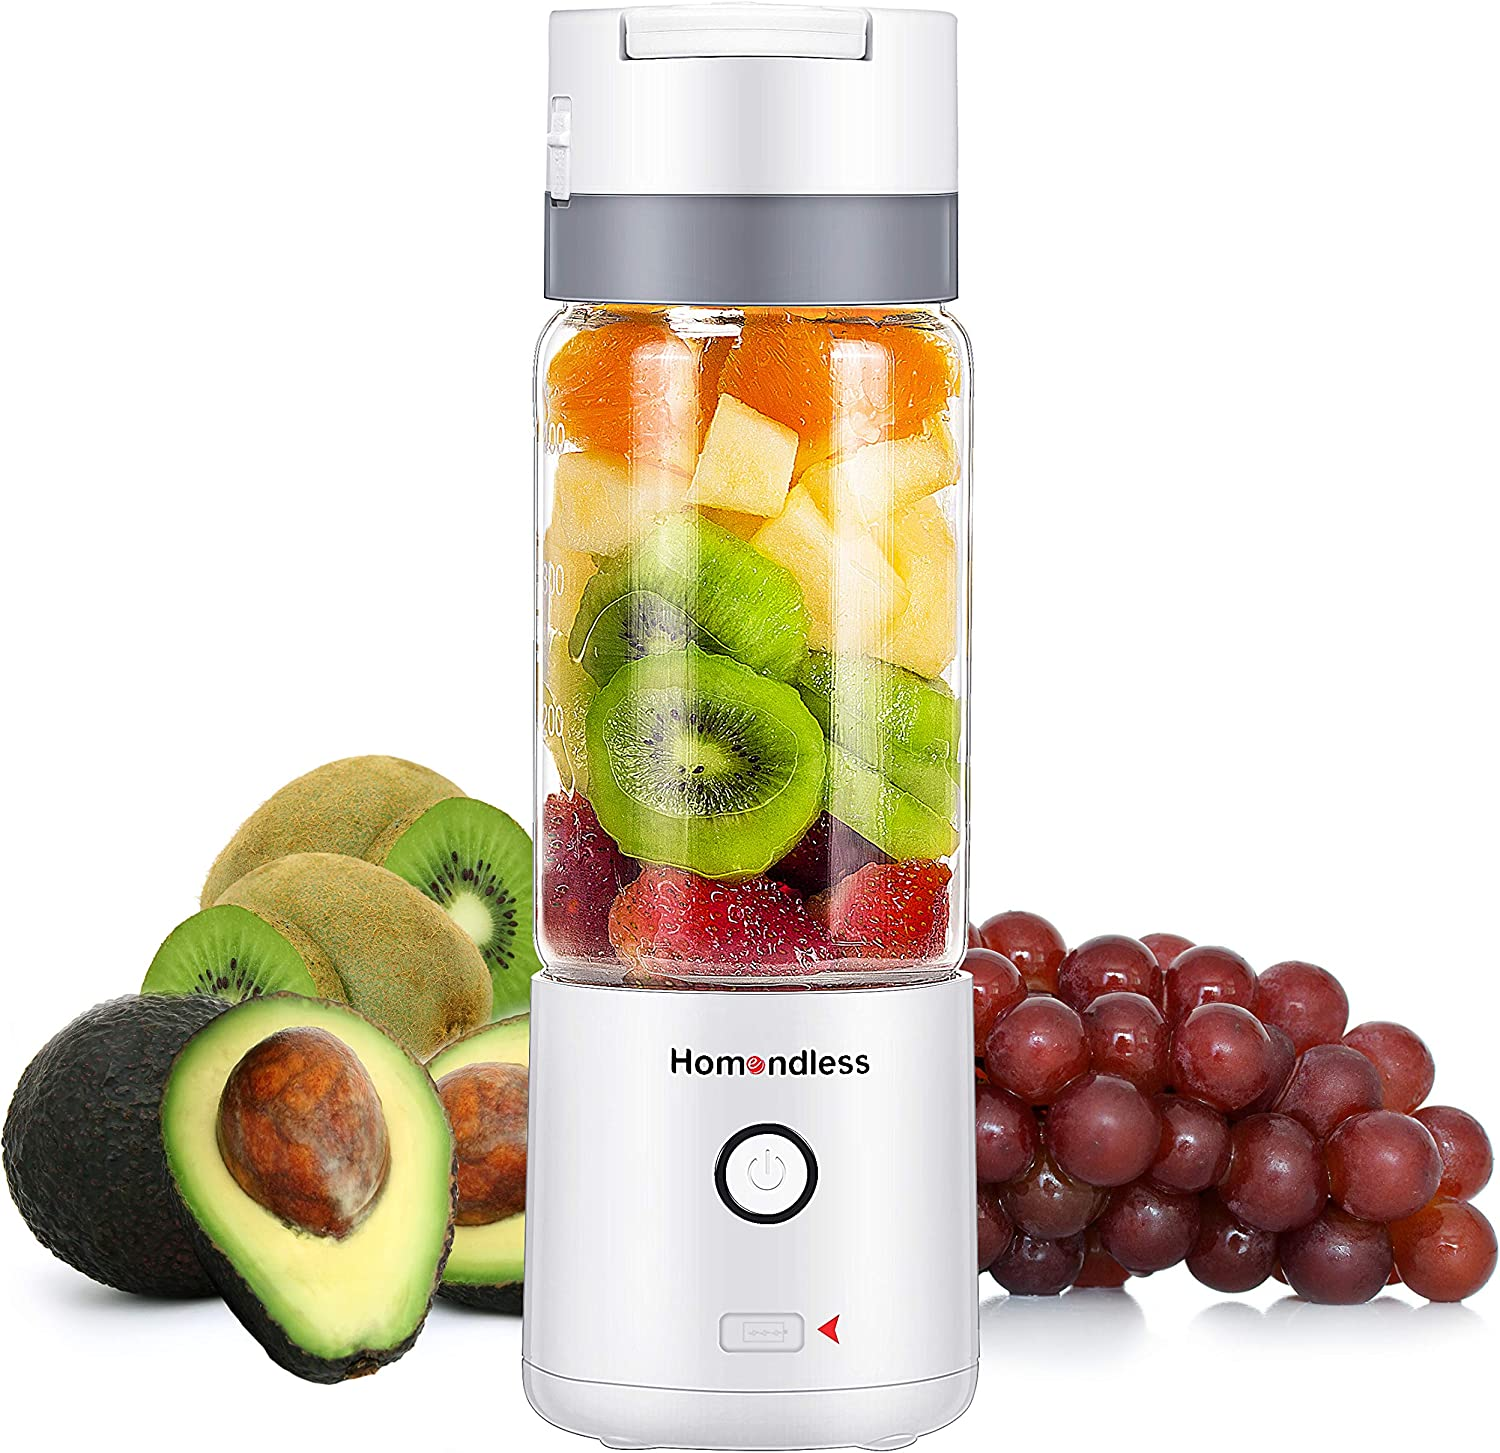 Portable Blender, Smoothie Blender with A Vacuum Lid, 4000 mAh Rechargeable Batteries 7.4V Strong Power, 14oz Glass Cup, 4 Blades Personal Blender for Office/Gym/Outdoors/Travel (White)